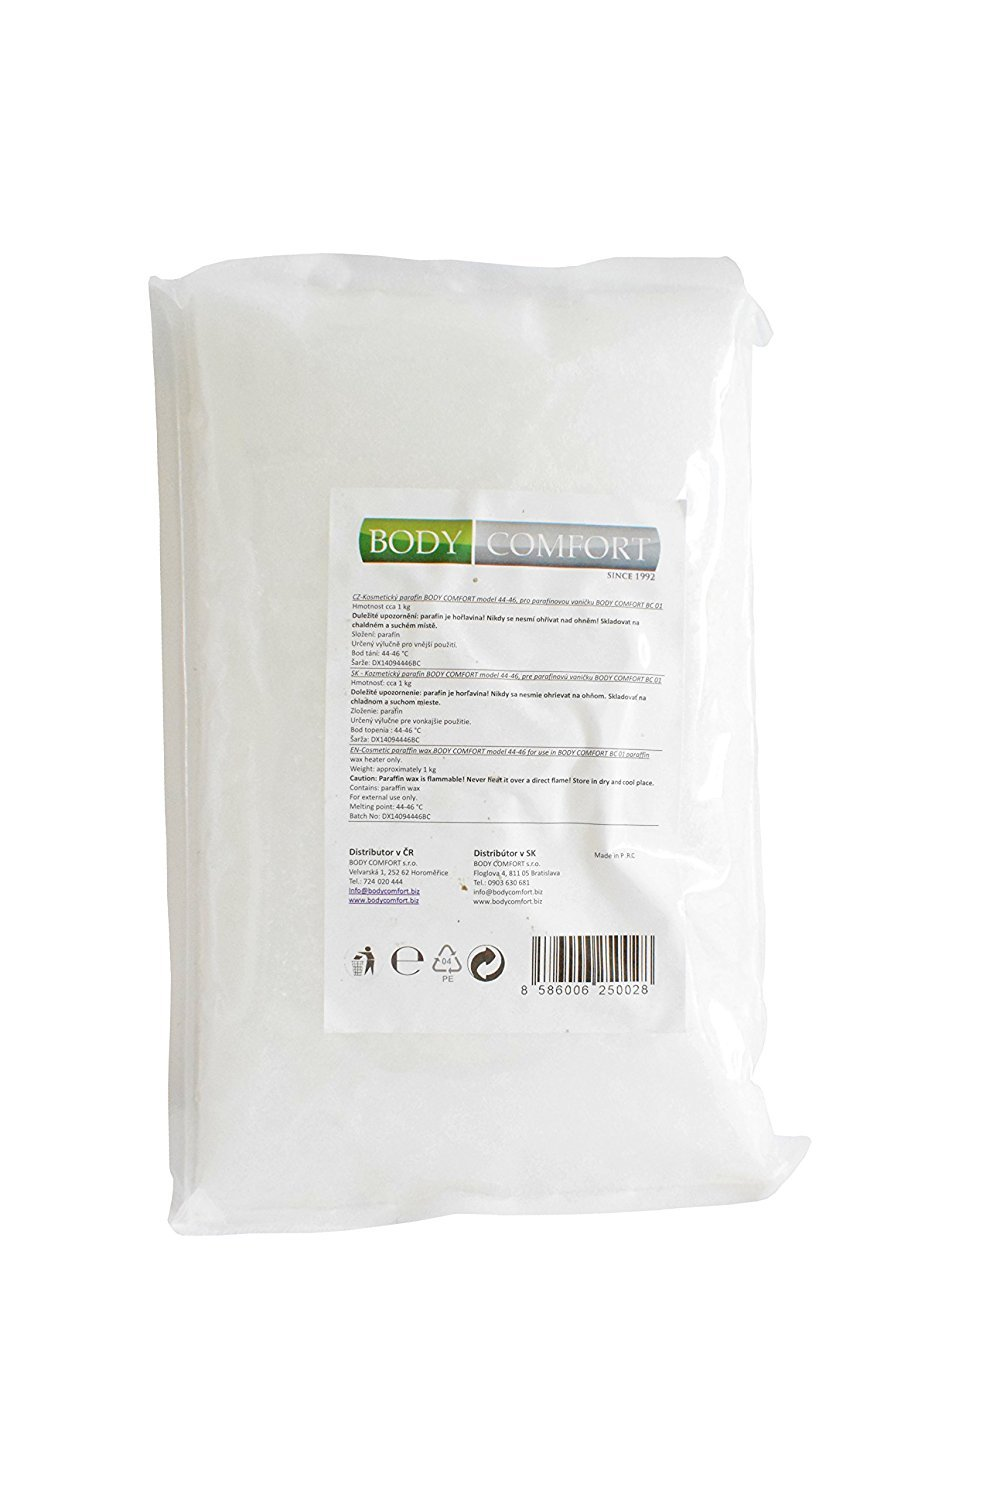 Cosmetic Paraffin Wax Body Comfort BC 02 approx. 1 Kg: Medically tested cosmetic + health care wax with lowest melting point on the market 44-46 degrees Celsius, BodyComfort